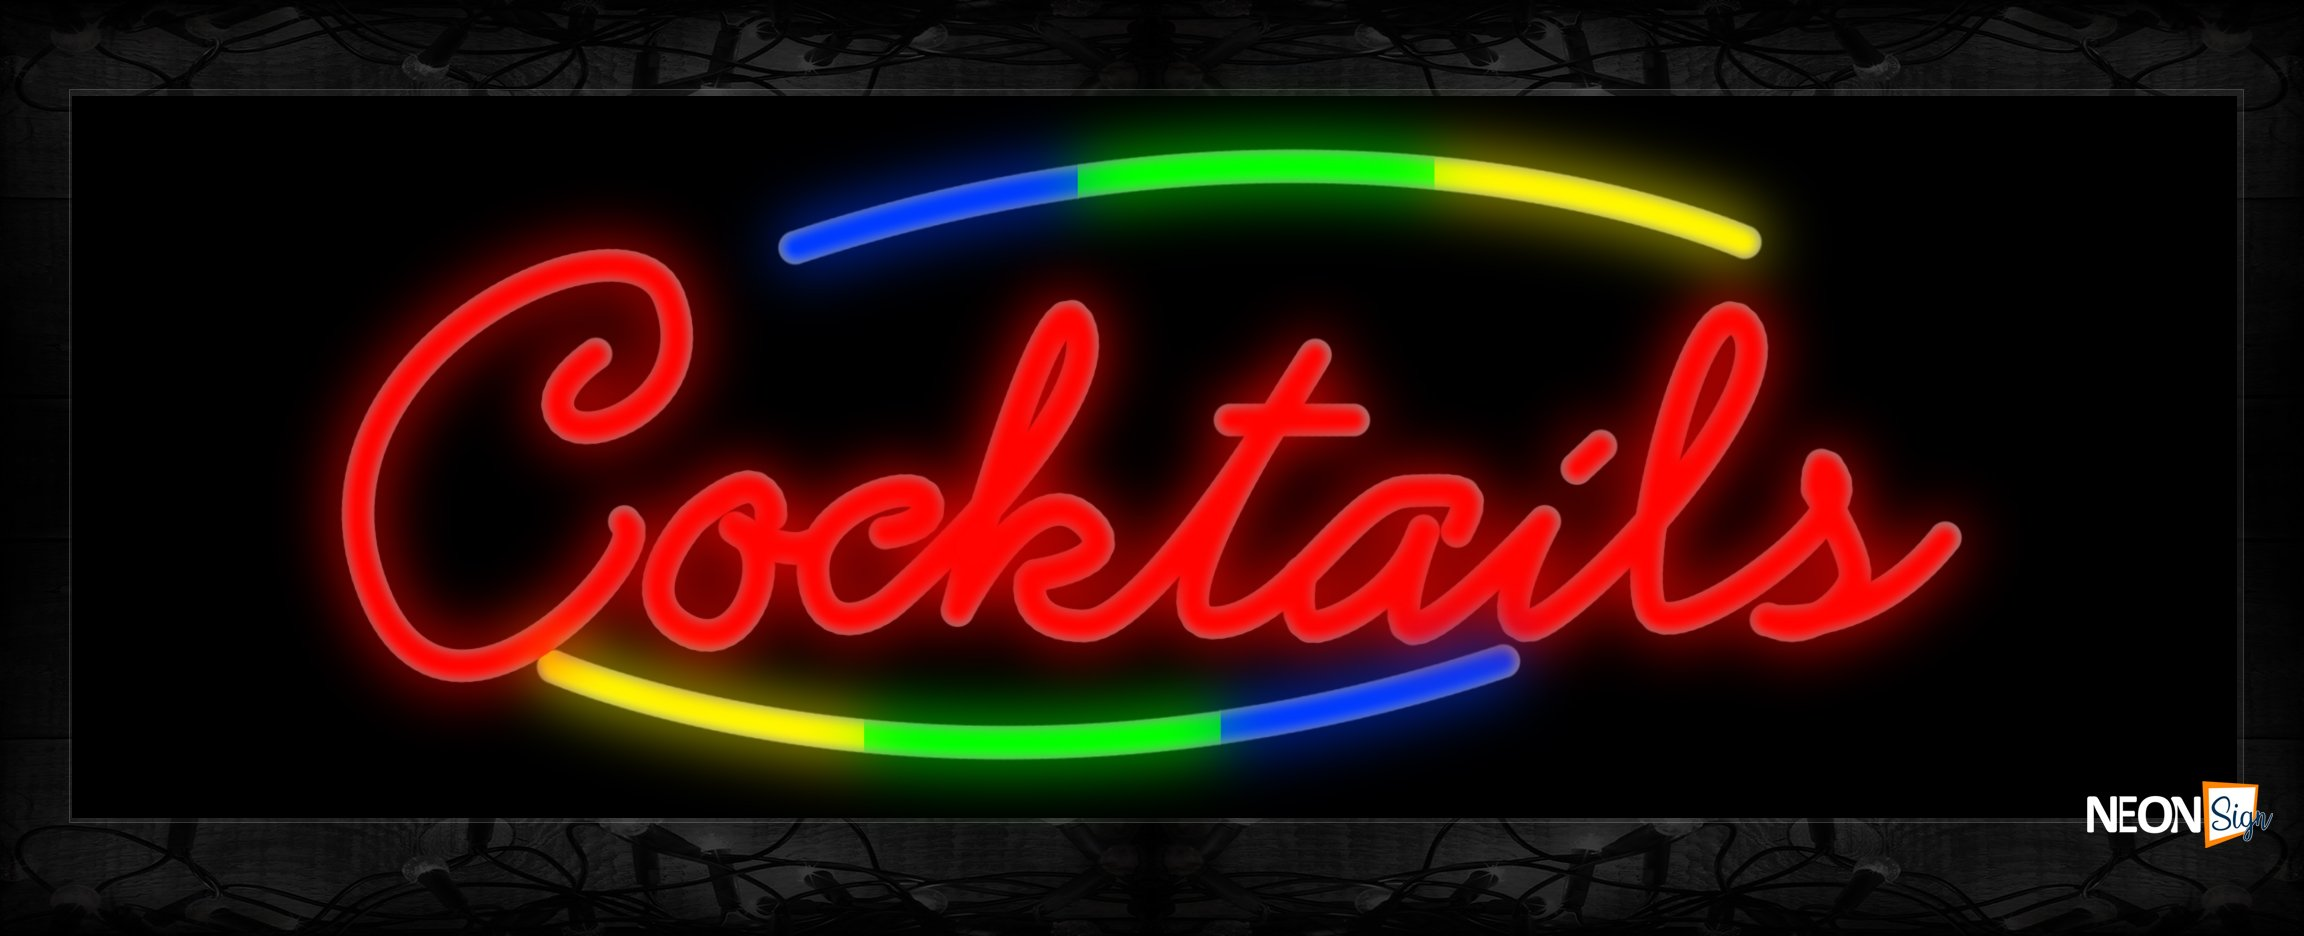 Image of Cocktails In Red With Colorful Arc Border Neon Sign